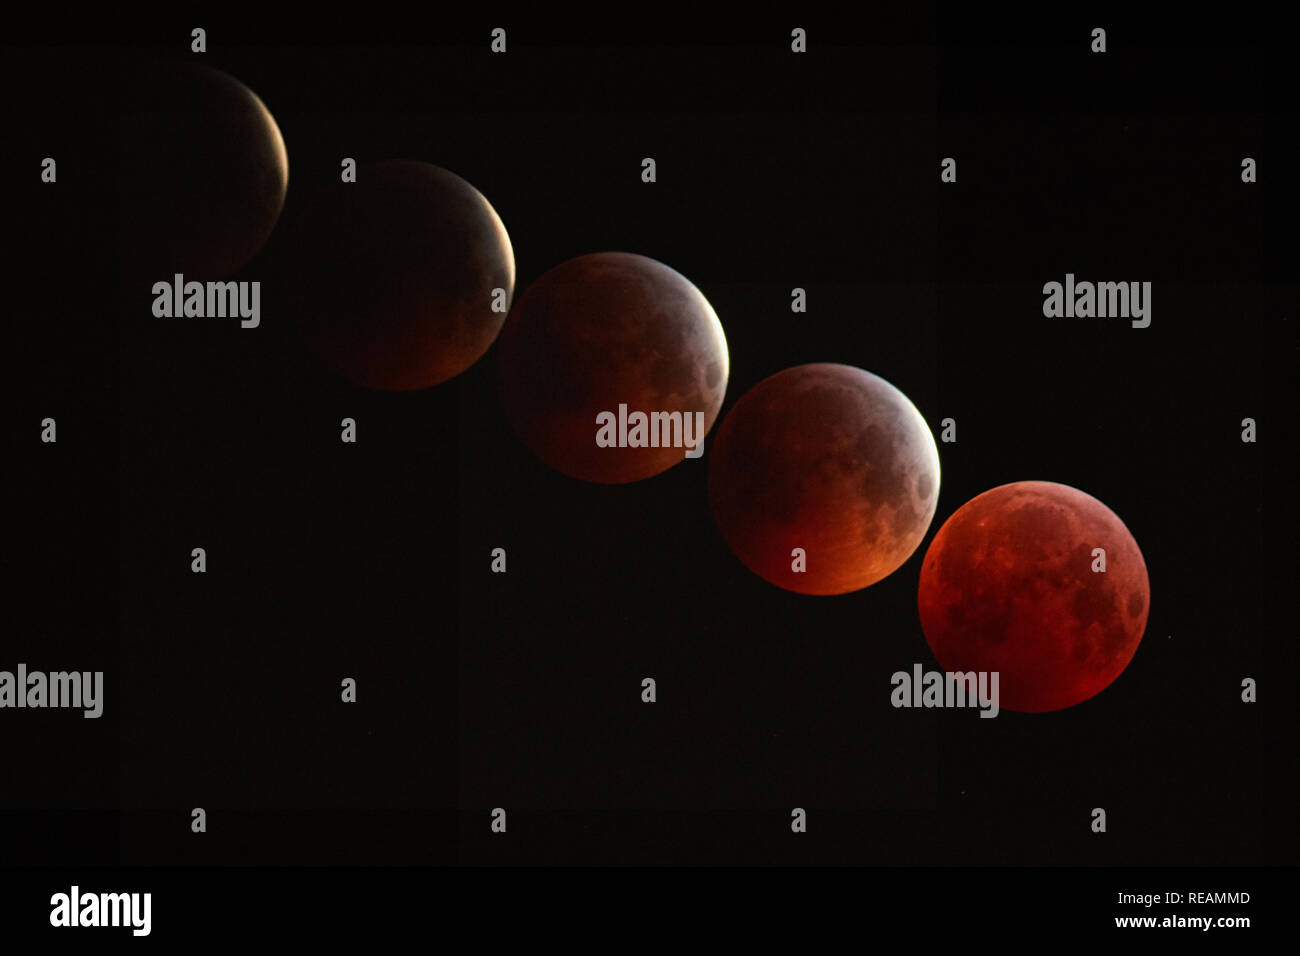 London, UK. 21st January, 2019. Lunar Eclipse, taken from Bexley, South East London. This is a five image stacked composite of images taken between 4.30am and approximately 5.12am on the 21st January 2019. Showing the full eclipse on the final image.  Credit: Steve Hickey/Alamy Live Newsmoon dark sky Credit: Steve Hickey/Alamy Live News Stock Photo